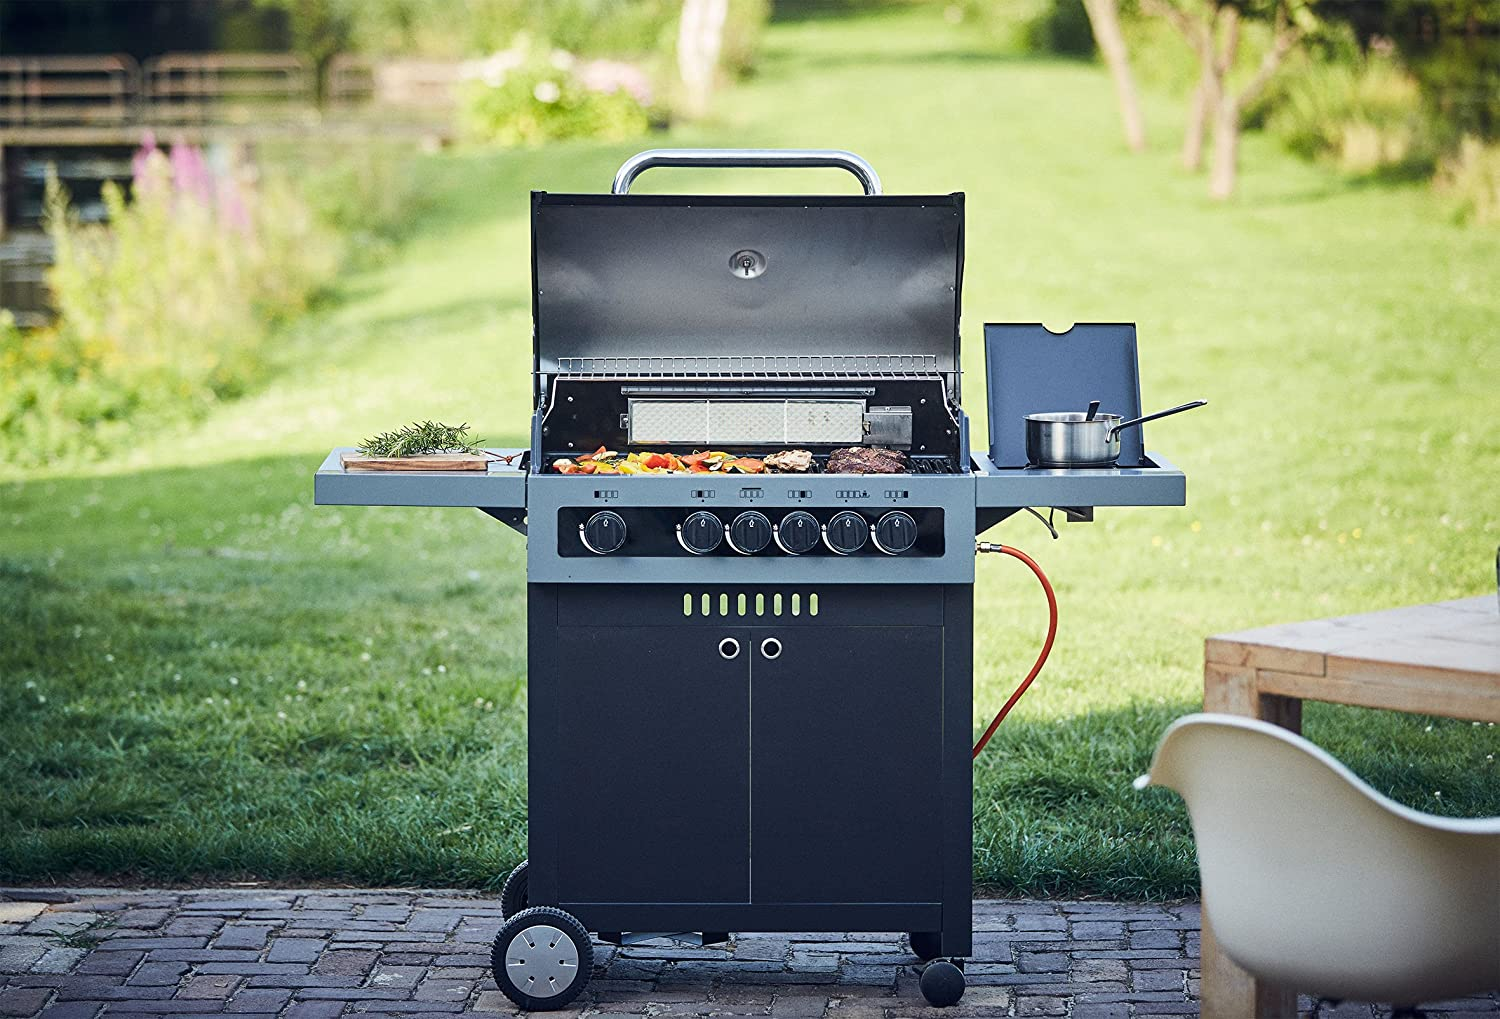 Aldi Gasgrill Boston 4 Ik : Enders bbq gasgrill boston black 4 ik gas grill 86876 4 edelstahl